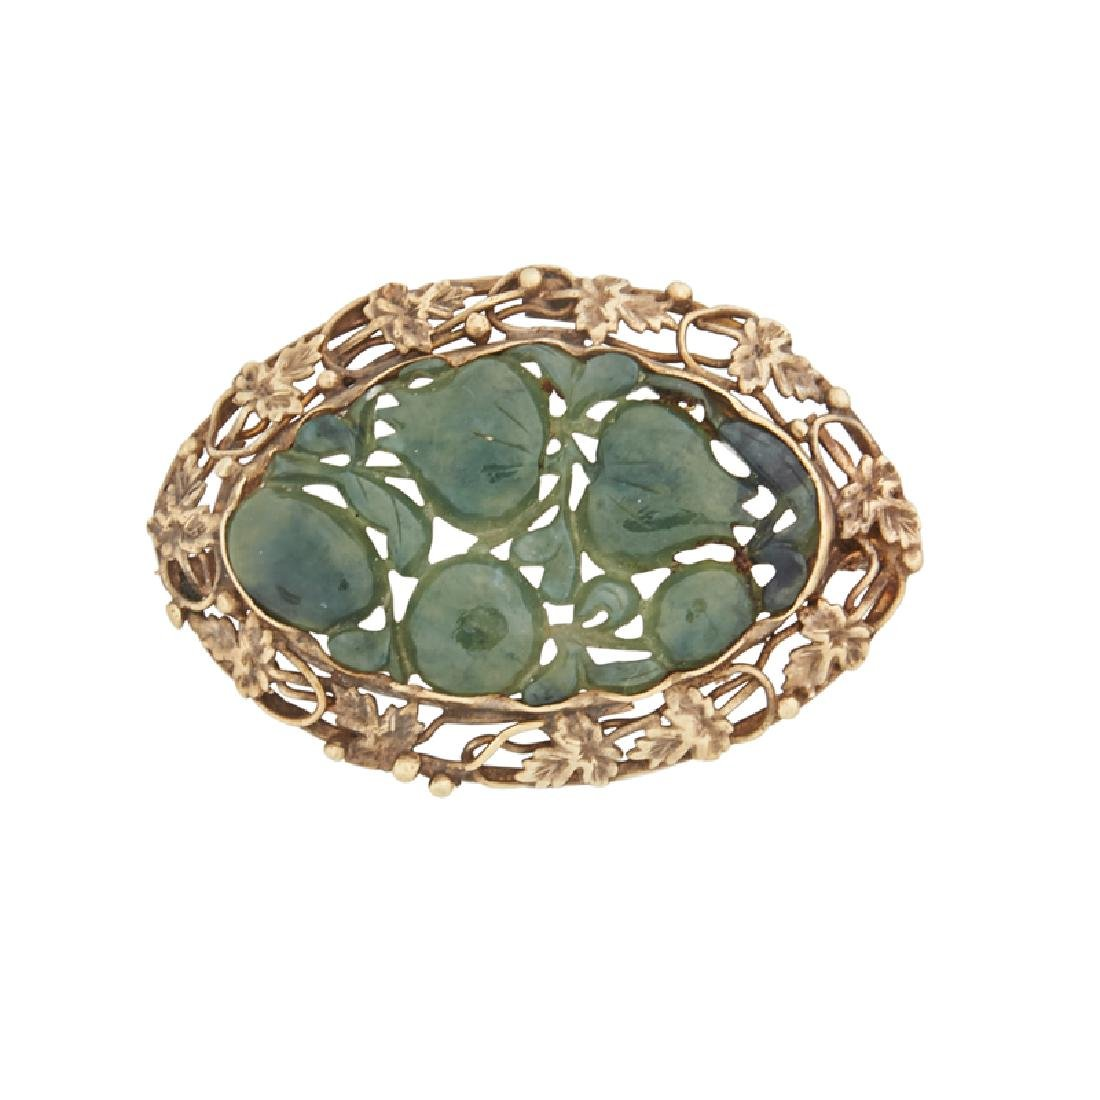 CARVED HARDSTONE & YELLOW GOLD BROOCH